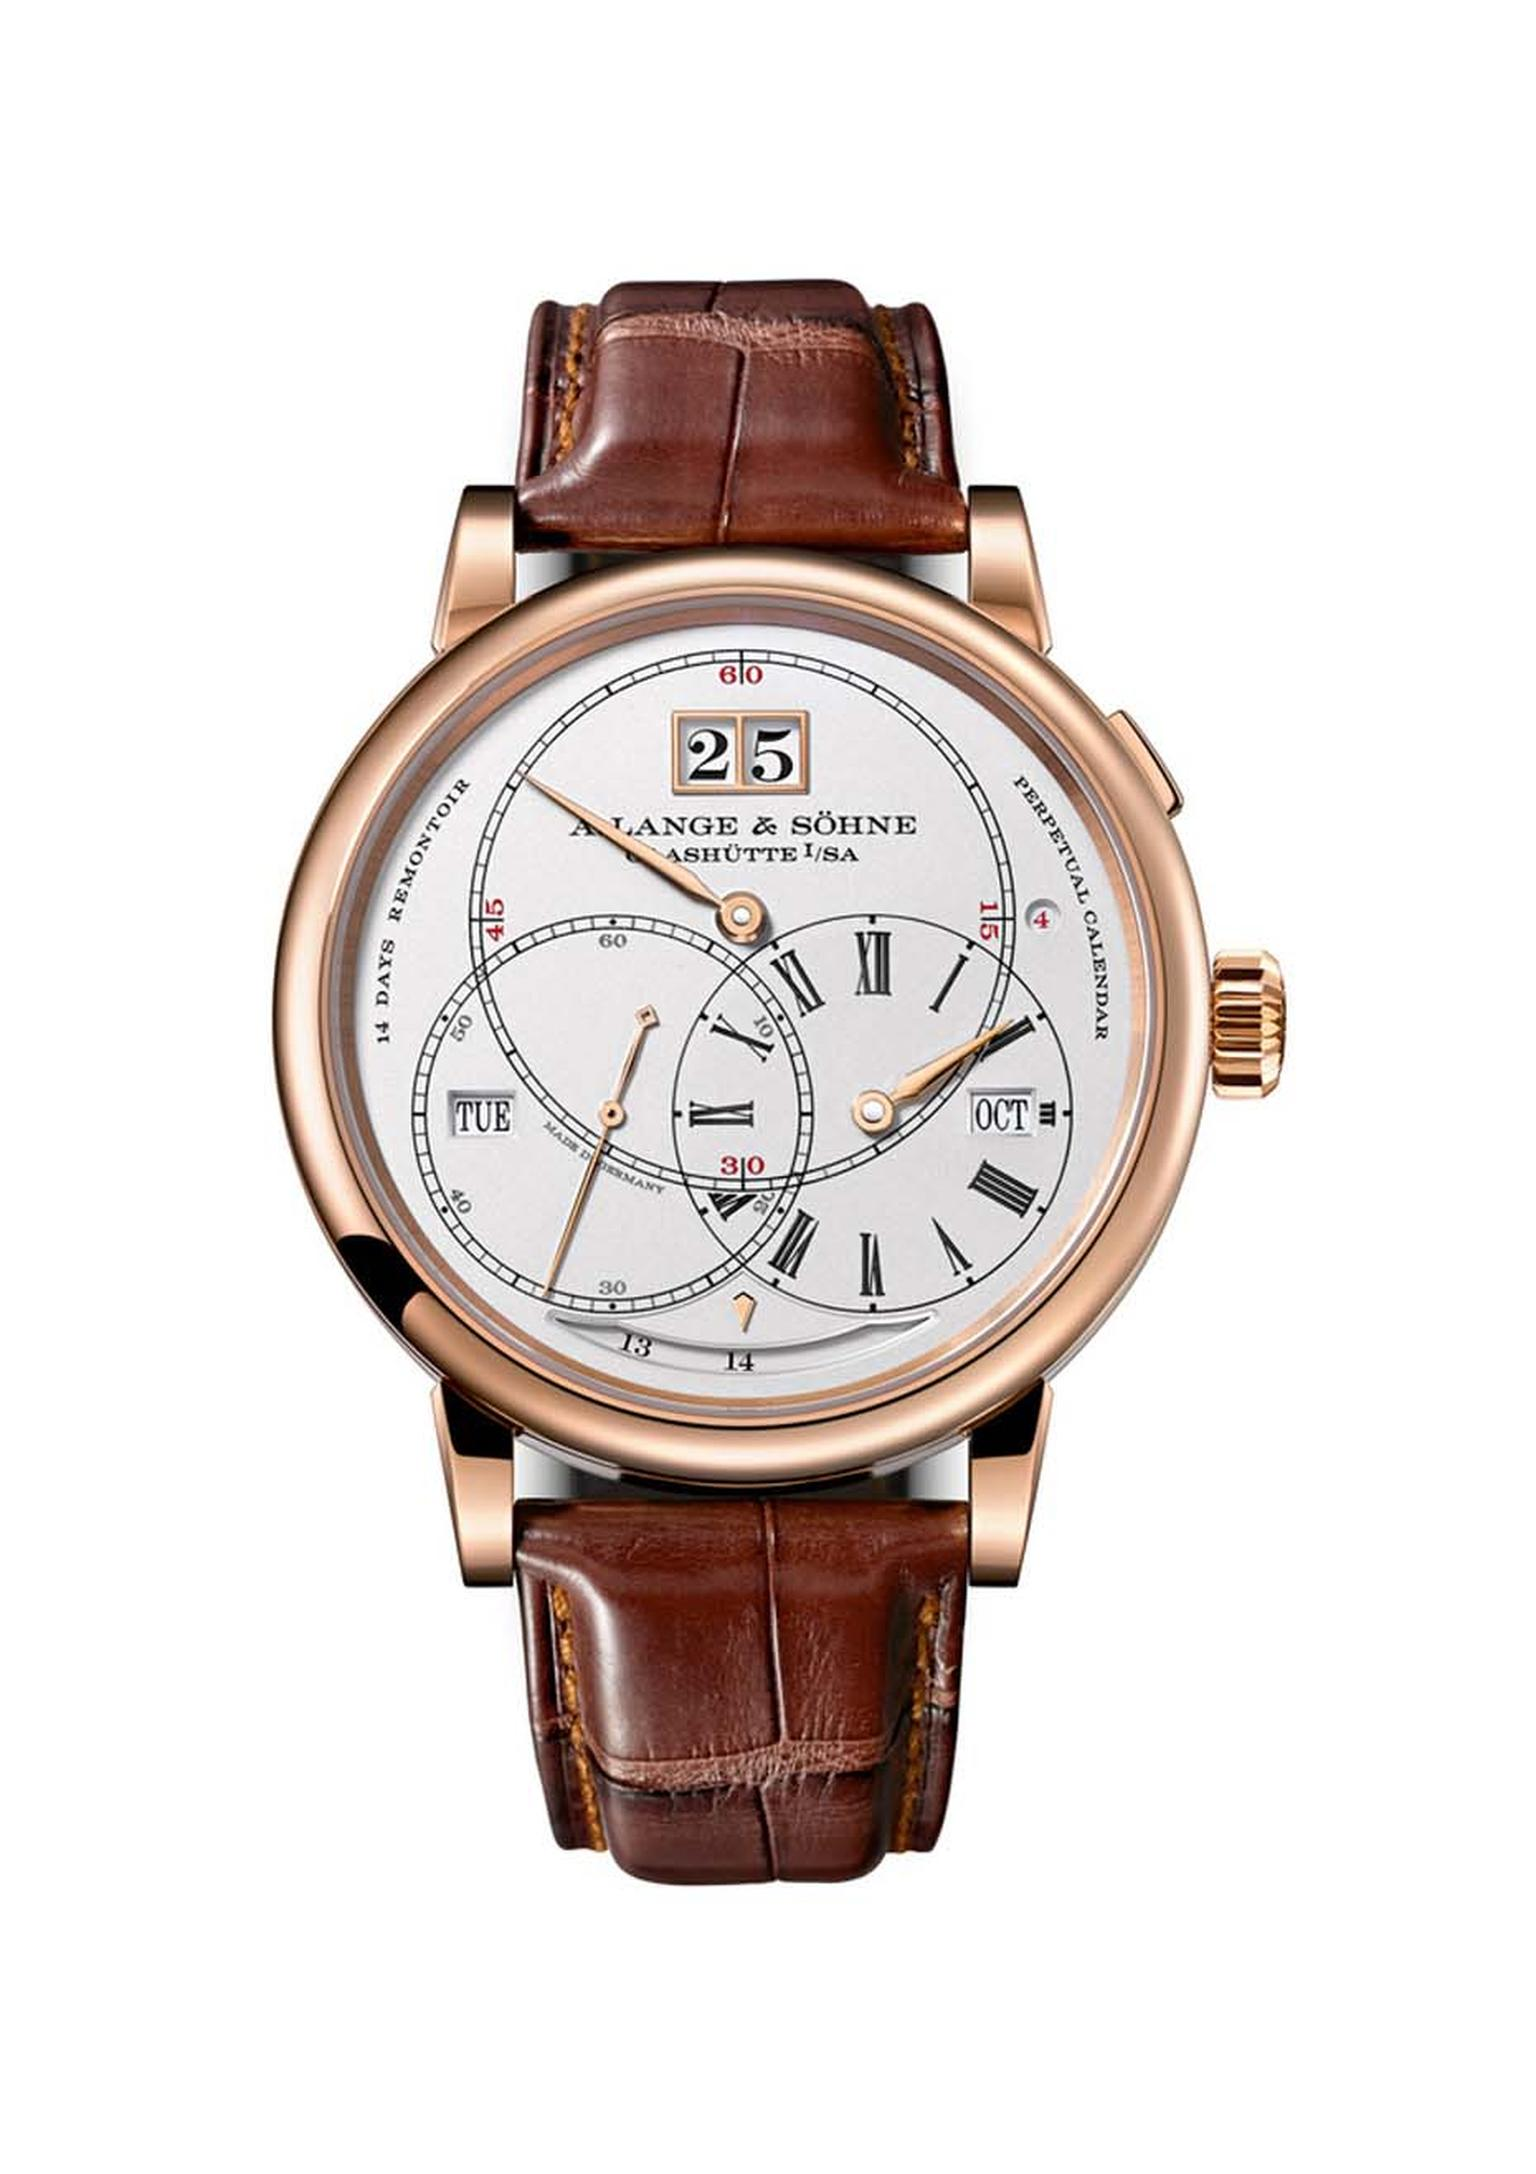 The GPHG Calendar Watch Prize went to A. Lange & Söhne's Richard Lange Perpetual Calendar Terraluna watch.